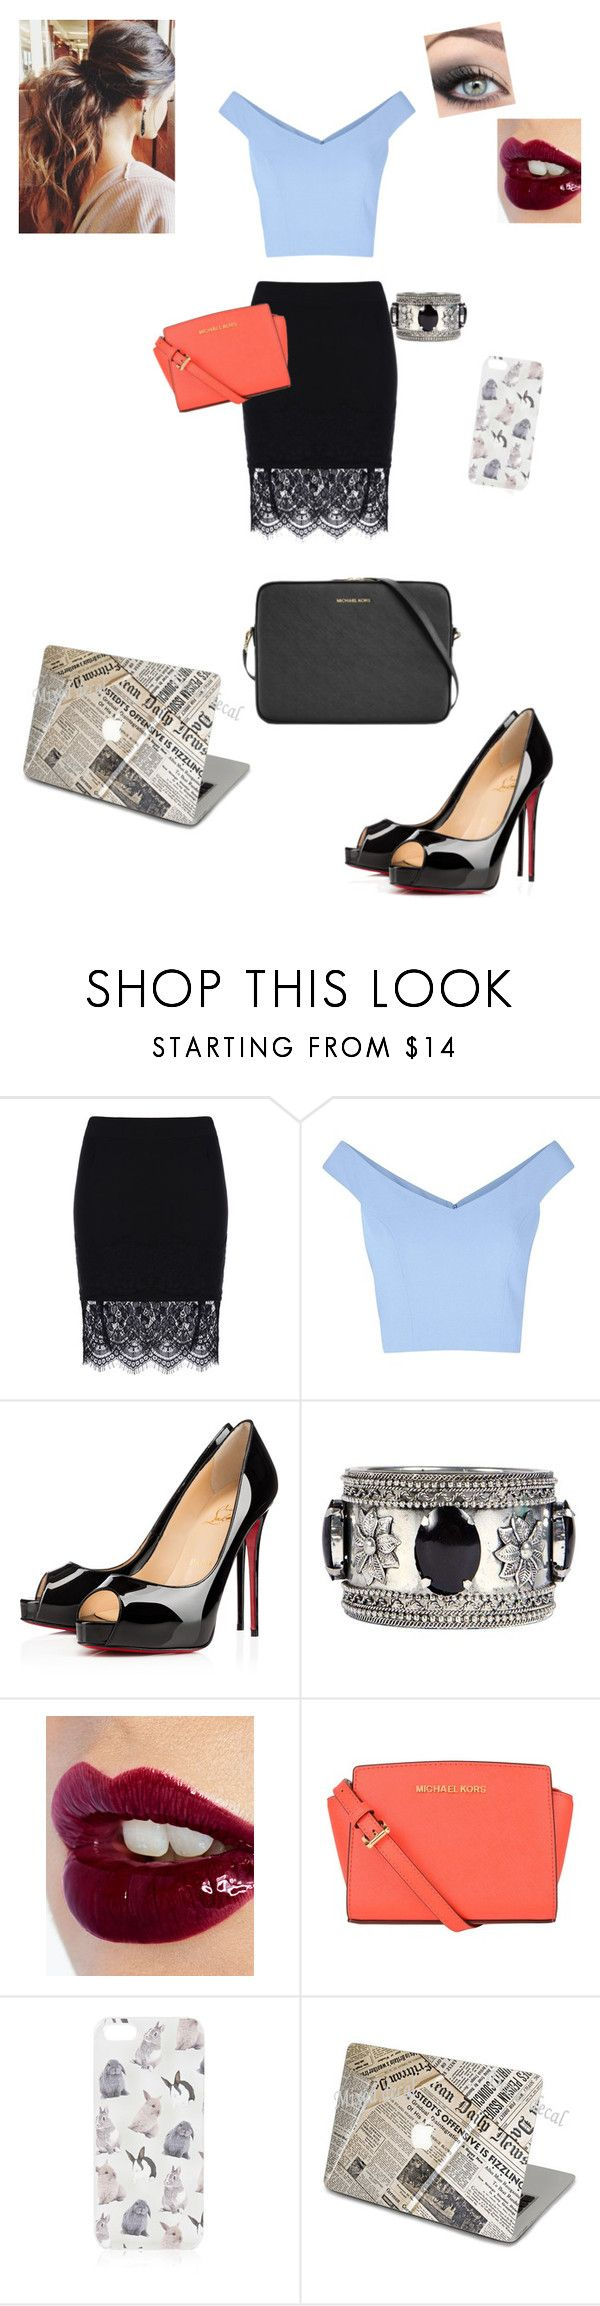 """""""If I was felicity smoke."""" by blackstar1259 ❤ liked on Polyvore featuring Christian Louboutin, Boohoo, Charlotte Tilbury, MICHAEL Michael Kors and Topshop"""